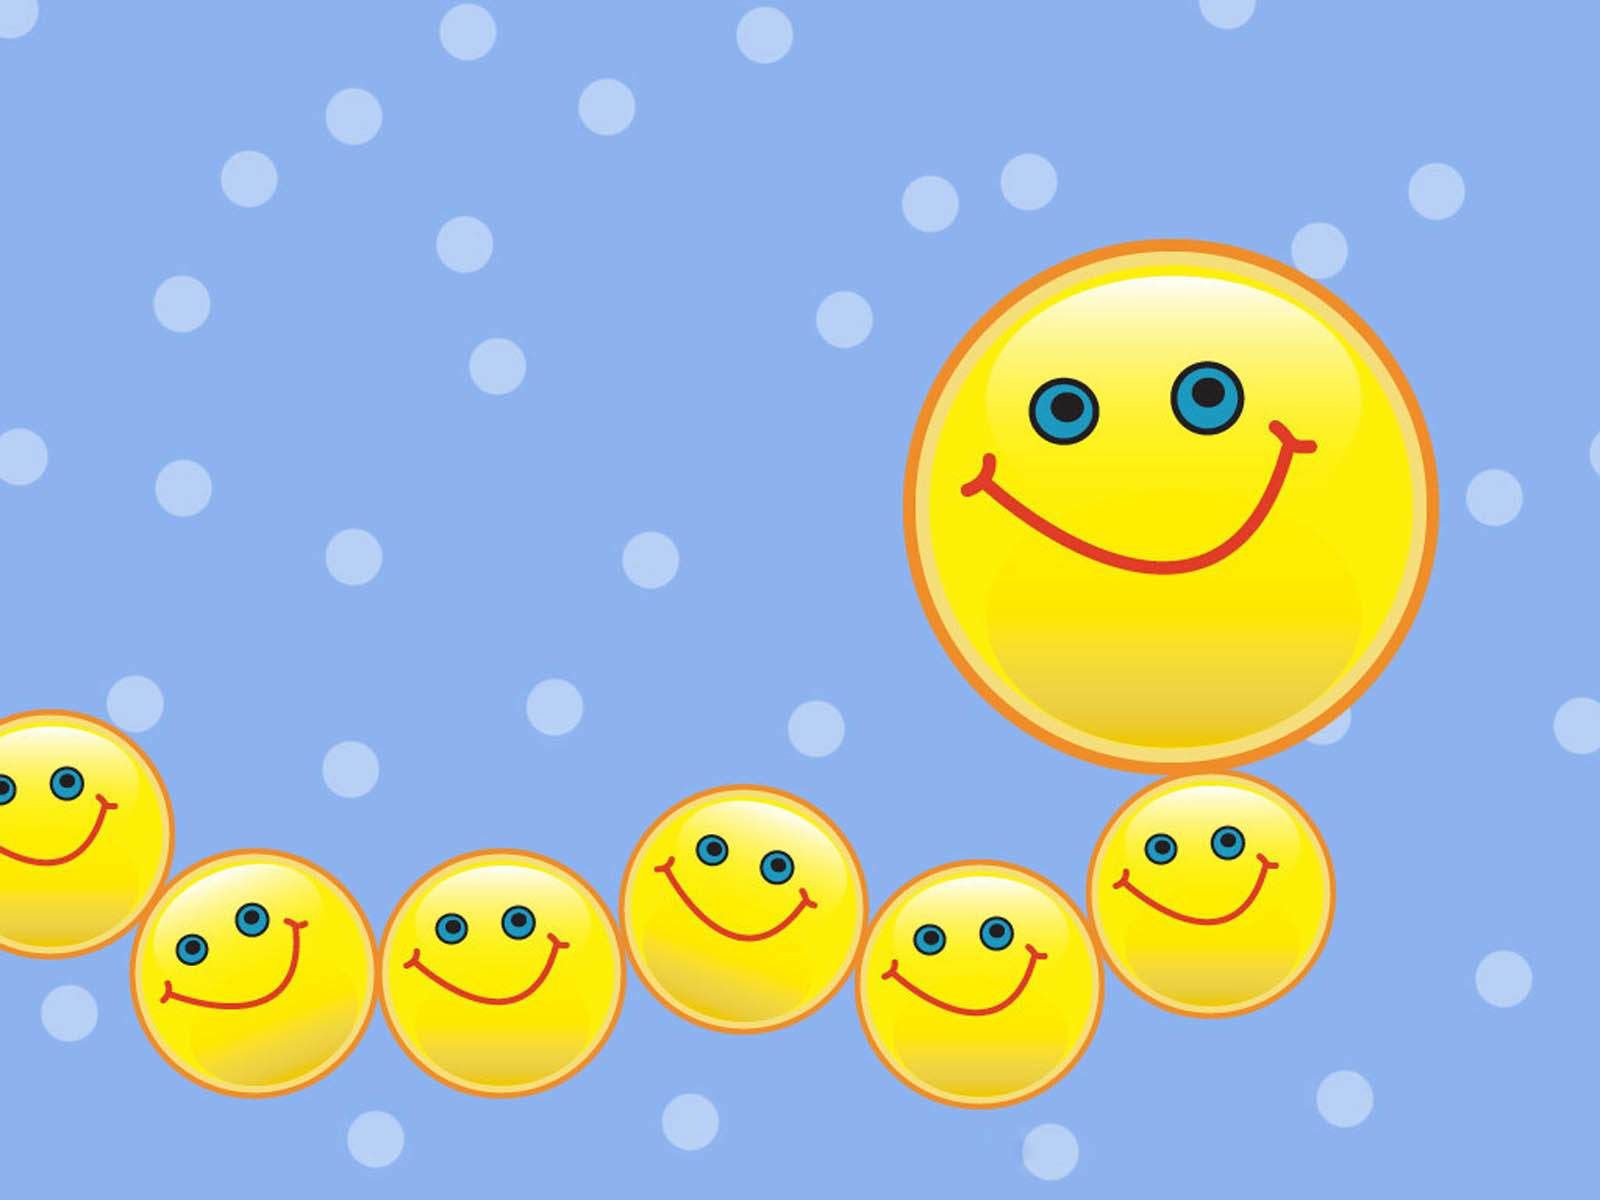 smiley backgrounds - photo #9